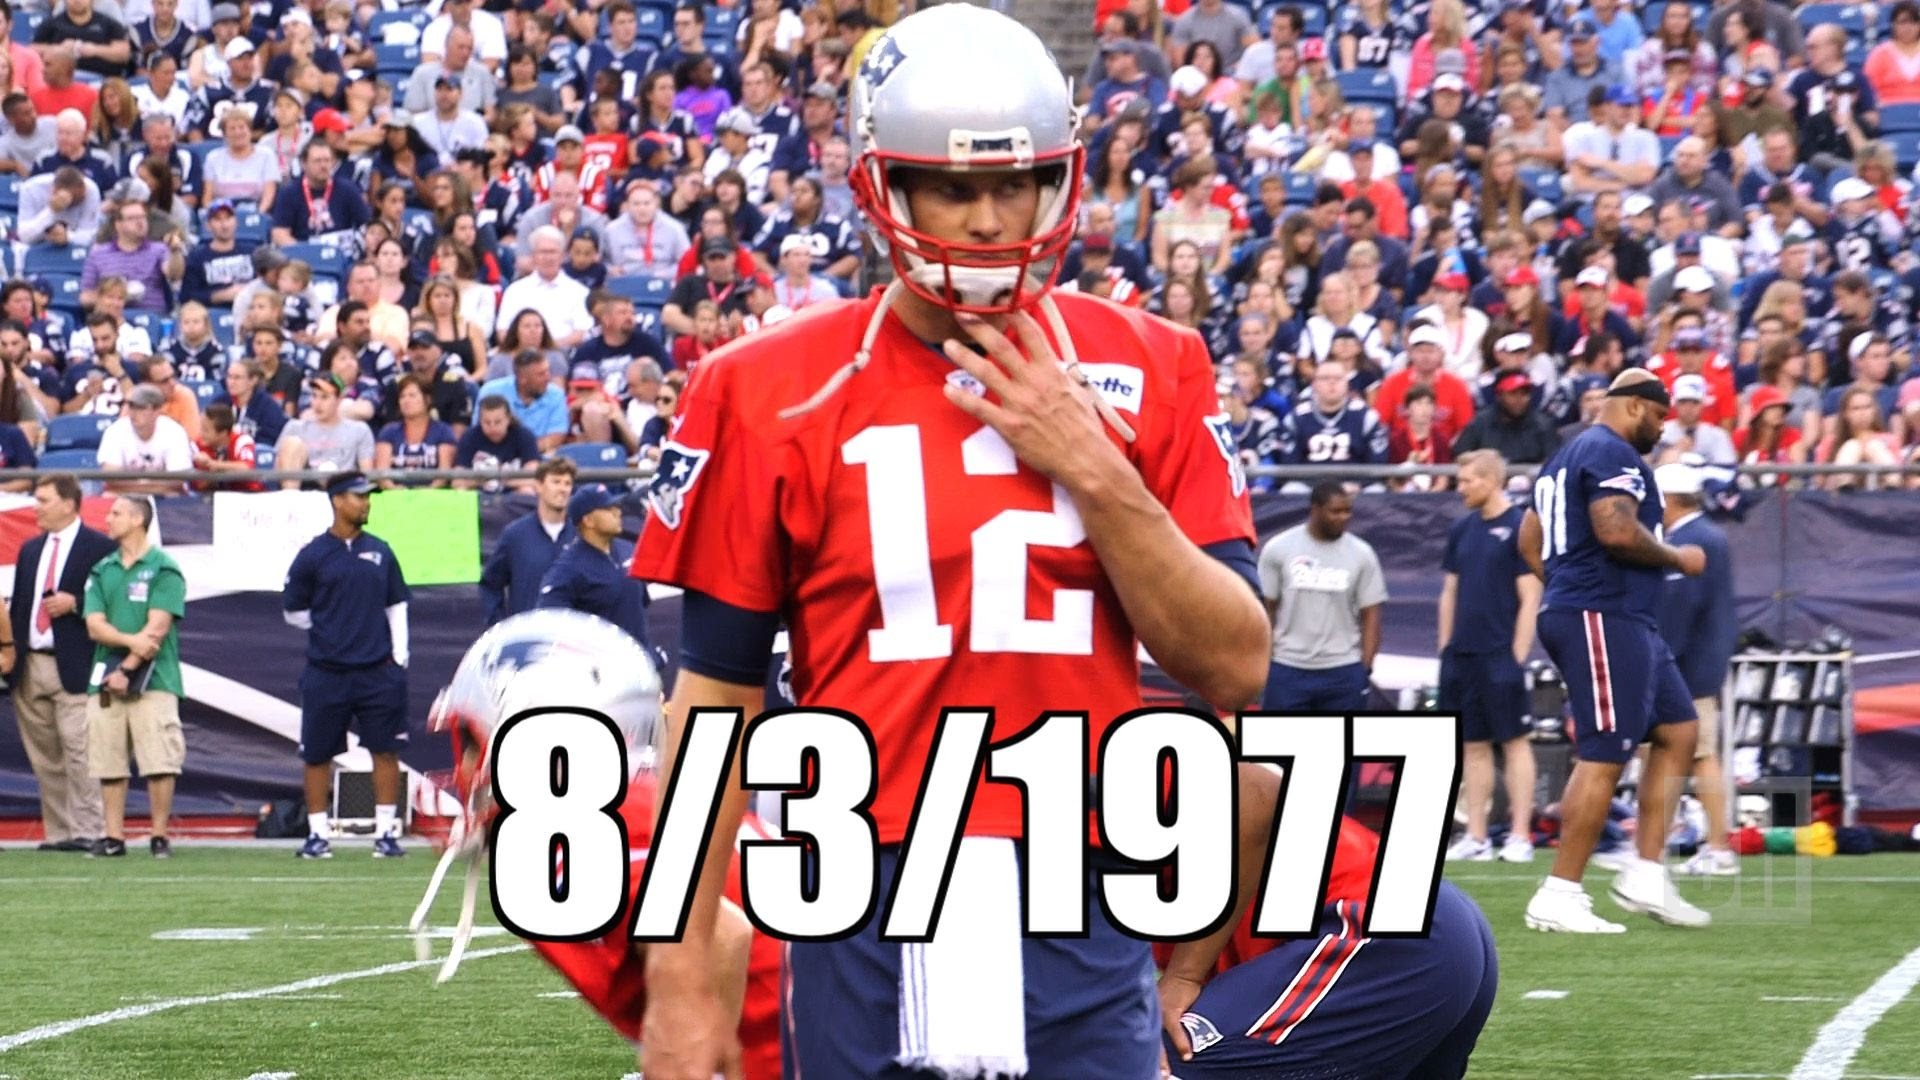 Res: 1920x1080, Steve Buckley looks back to 8/3/1977 Tom Brady and Boston Sports